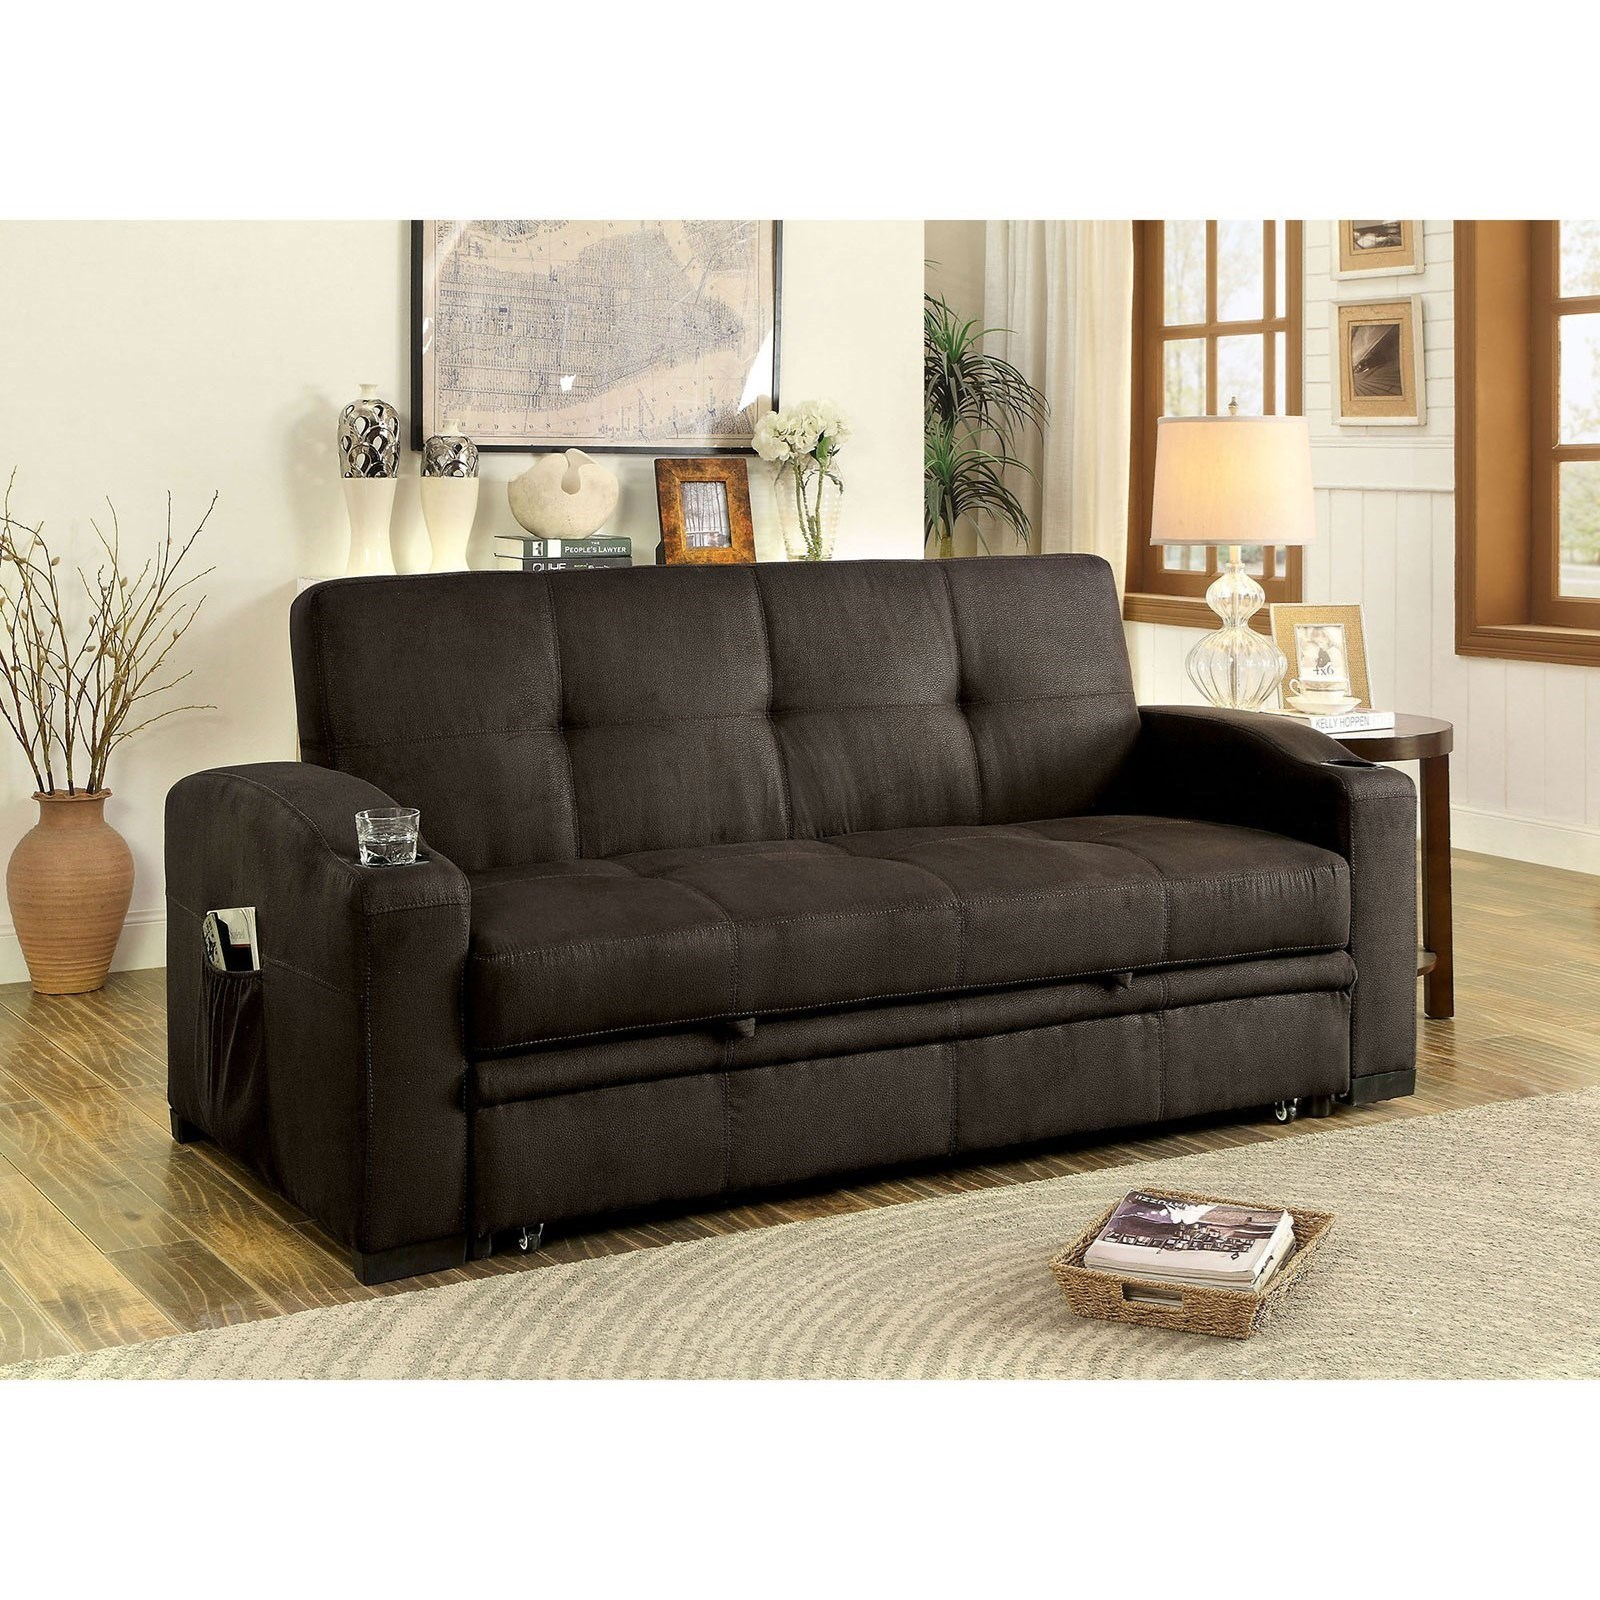 Furniture Of America MavisFuton Sofa